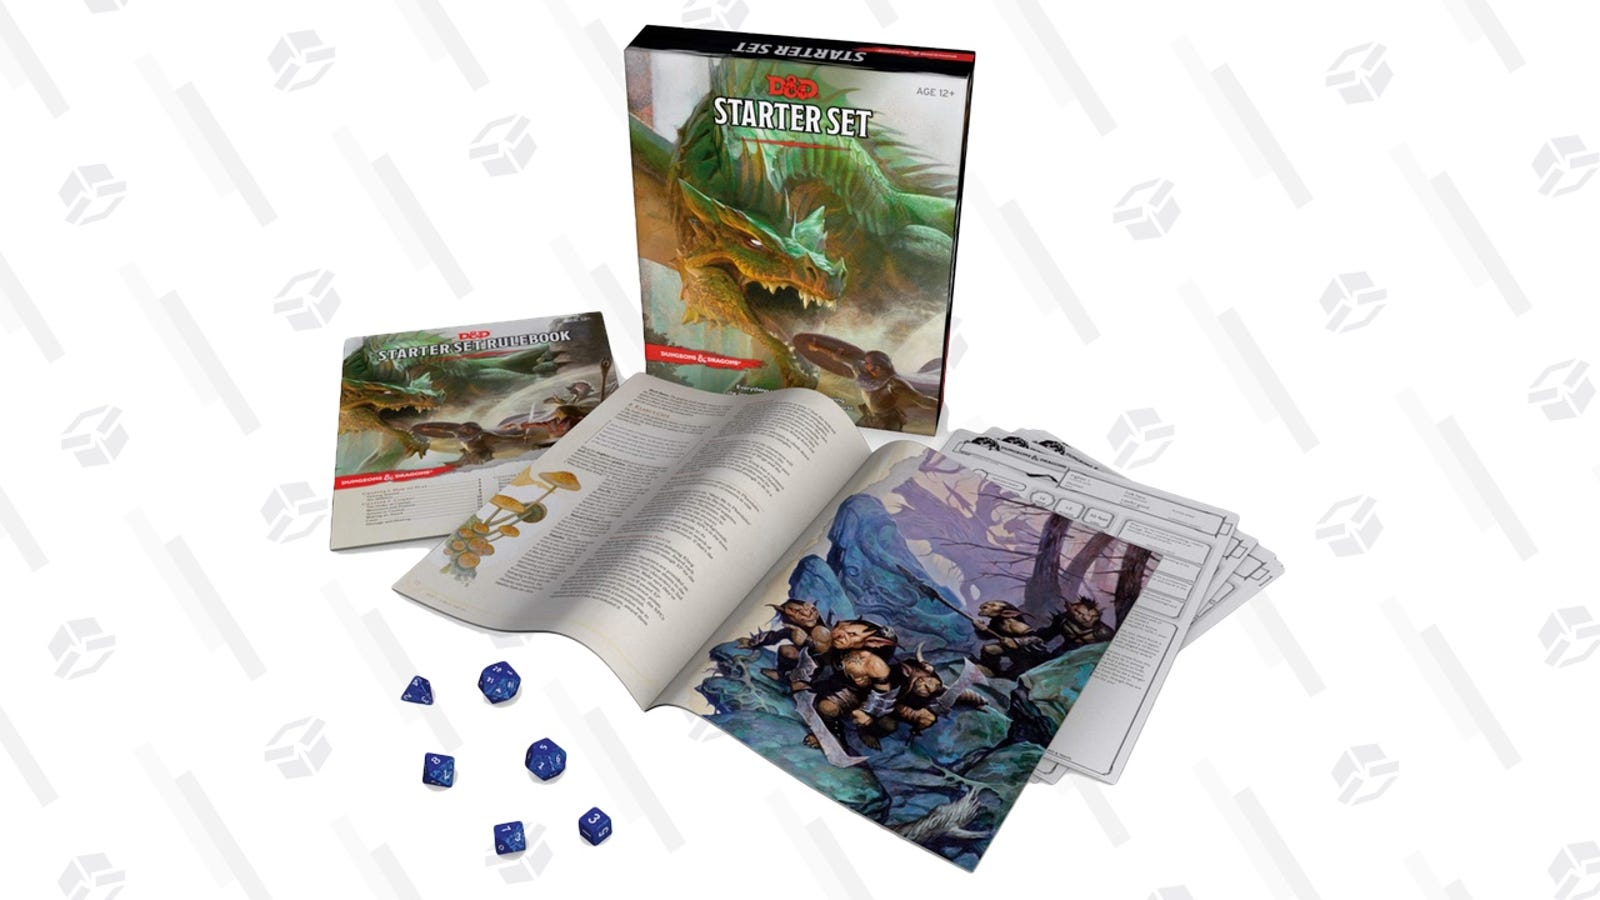 Everything You Need to Start Playing D&D Is Just $12 On Amazon